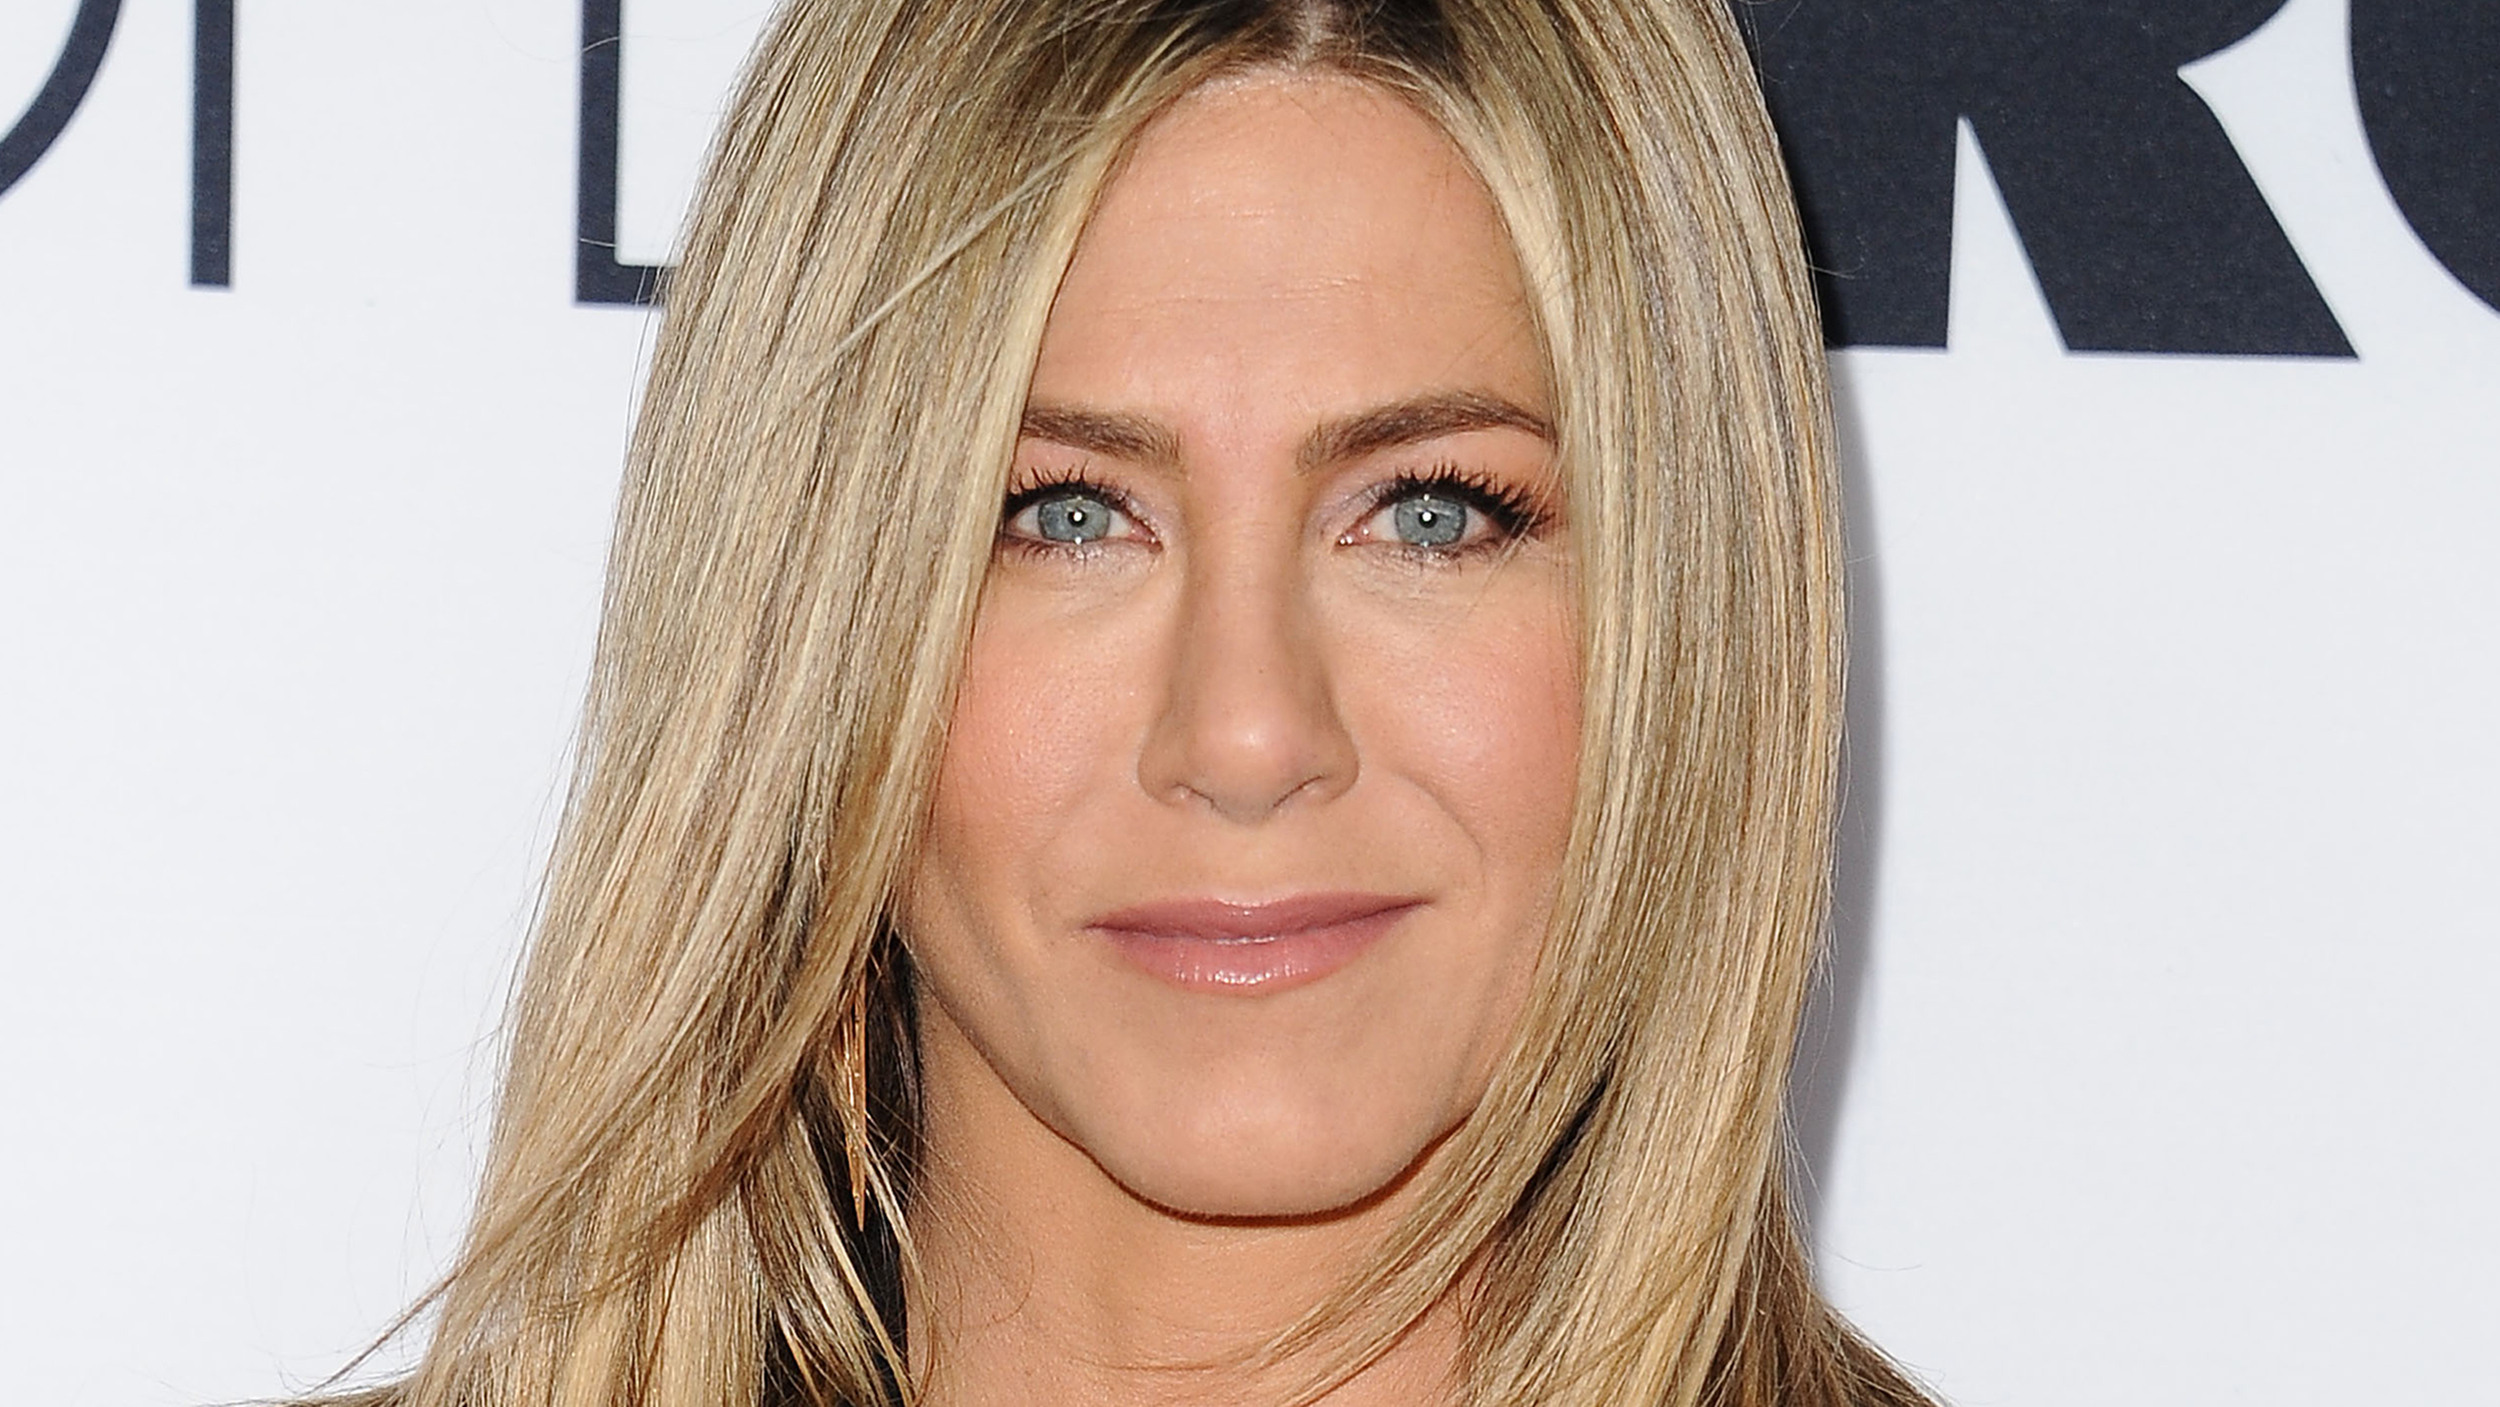 Jennifer Aniston: Jennifer Aniston Reveals Struggles With Self-doubt In